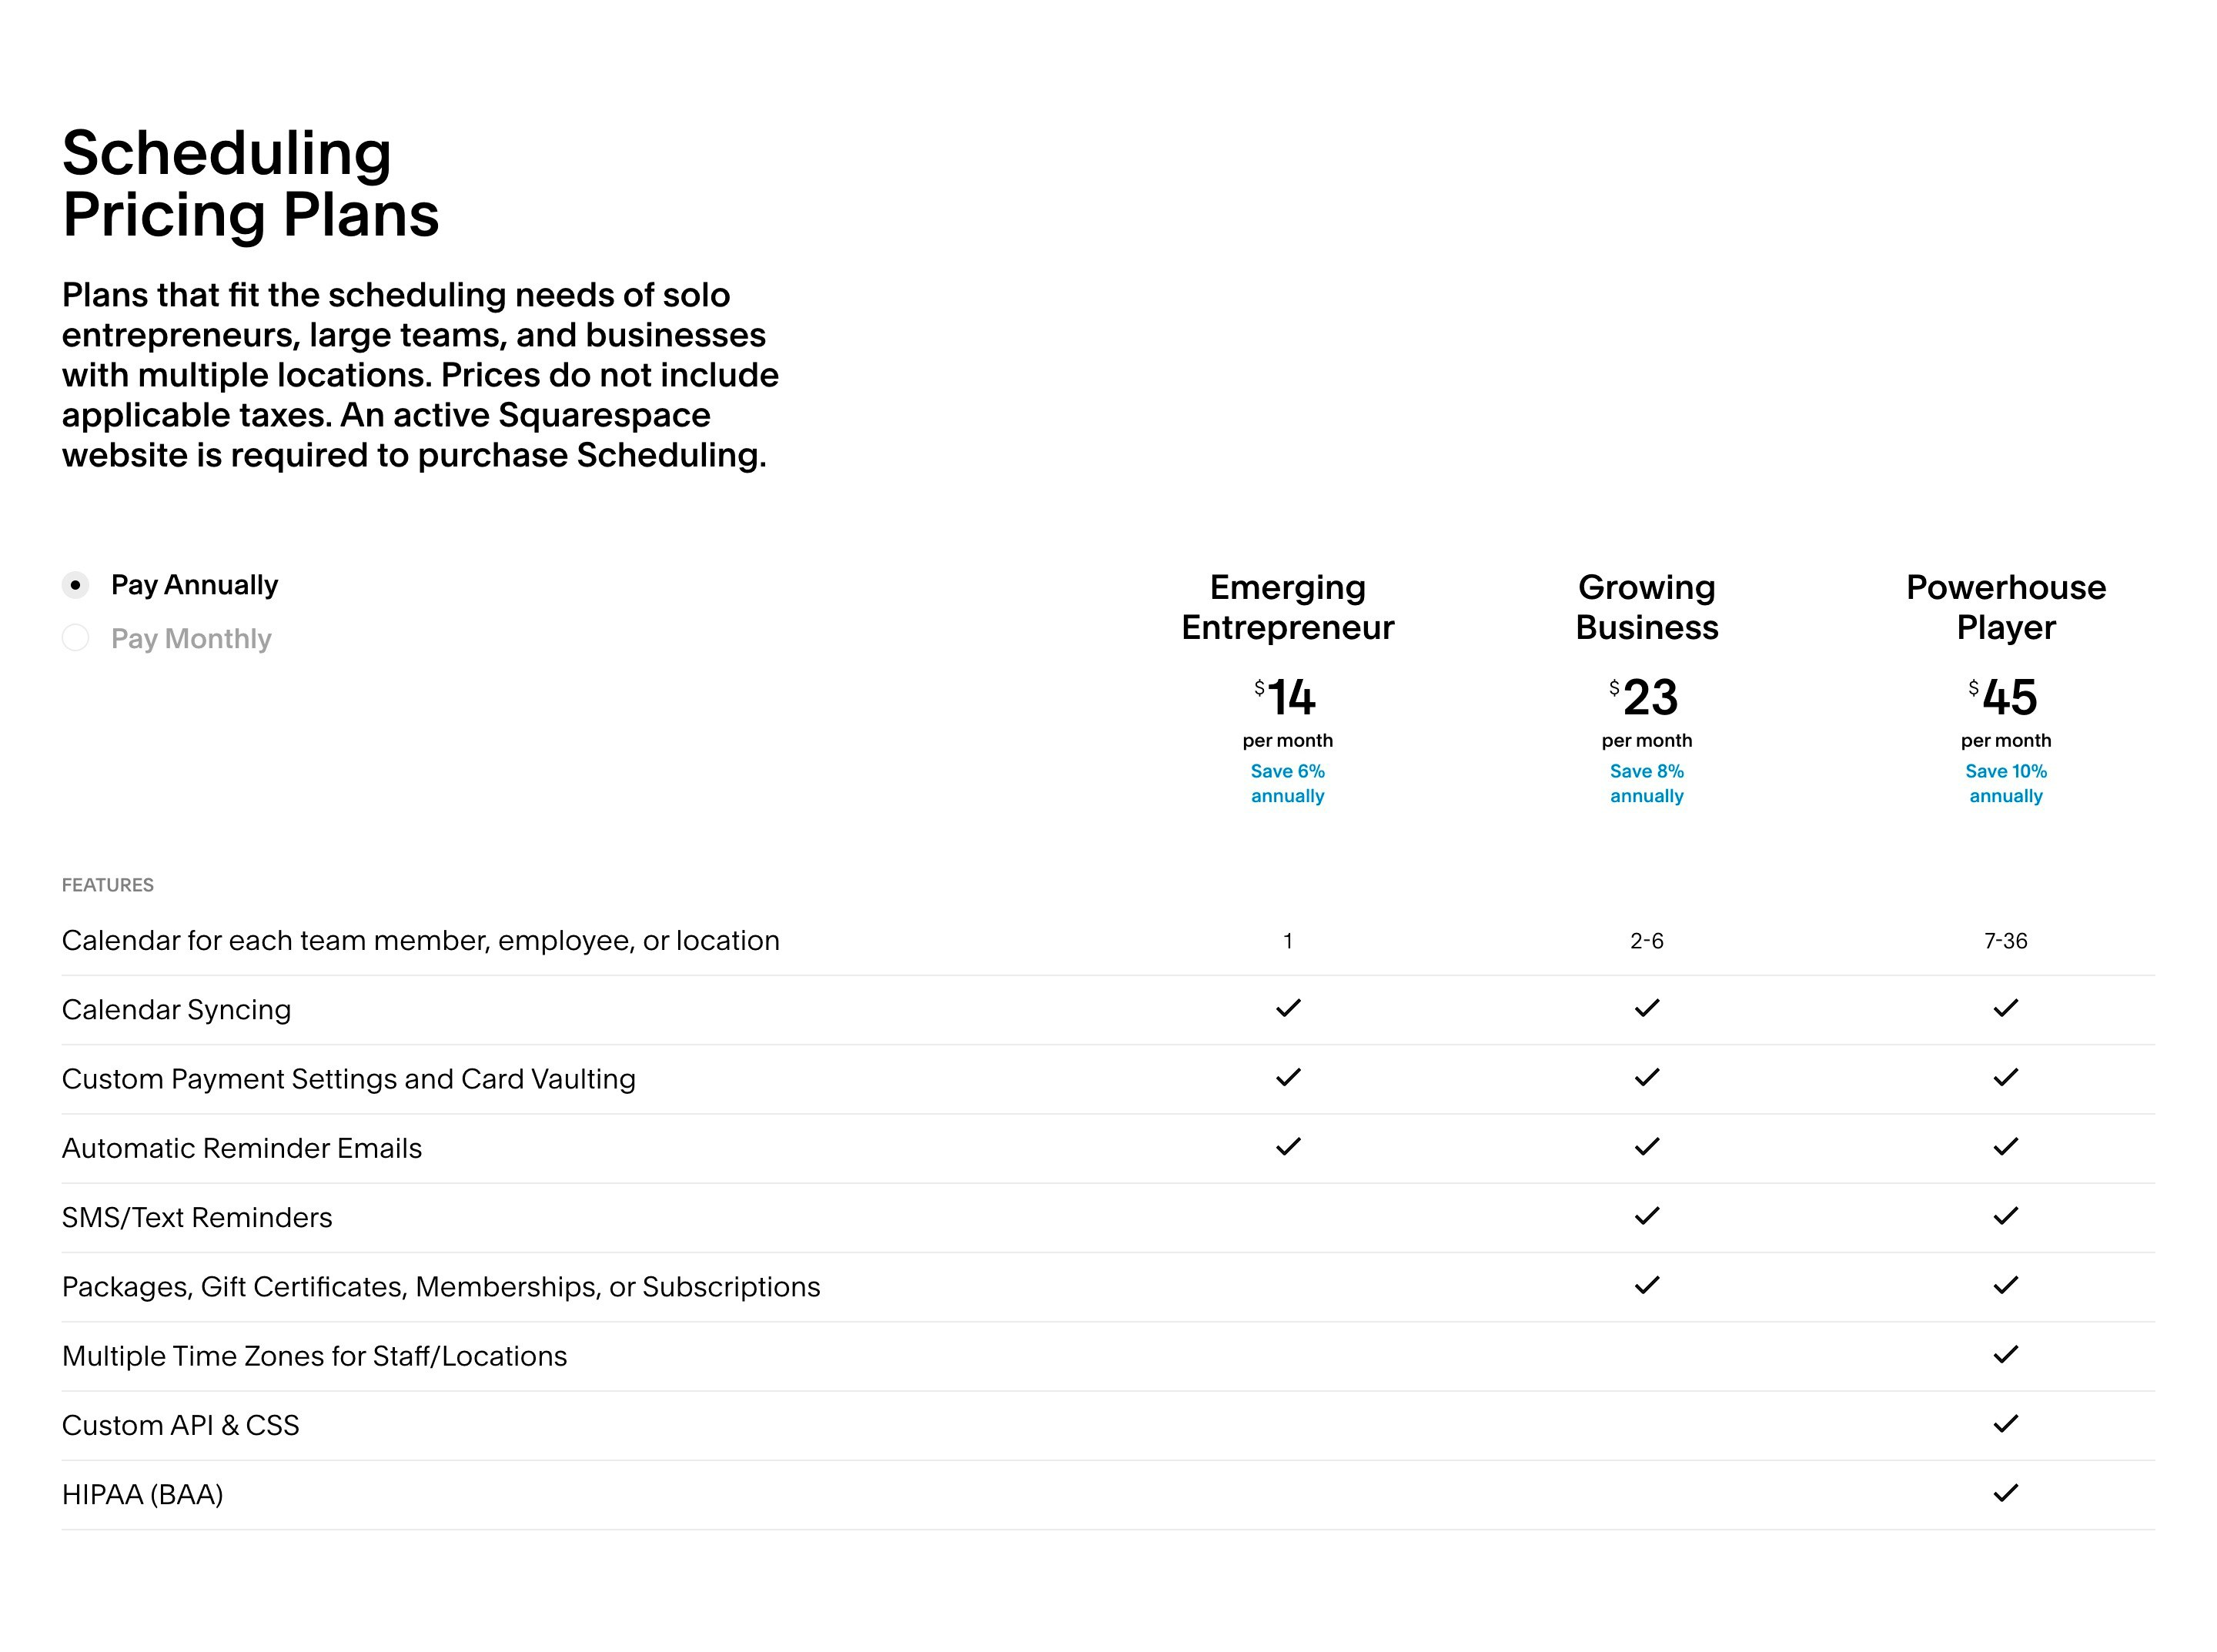 Pricing with Plans Table Comparison